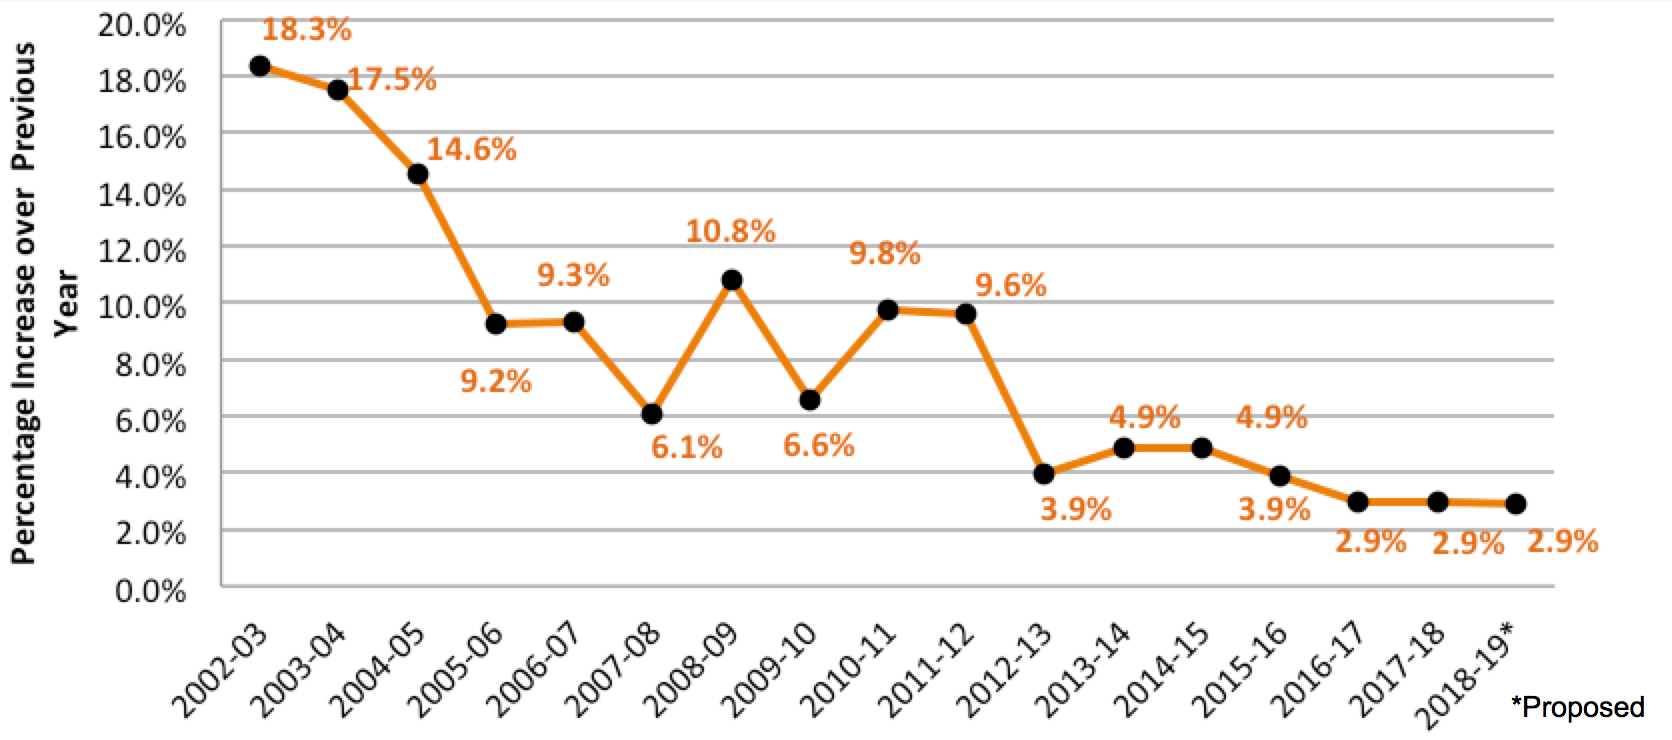 Percentage increase over previous years